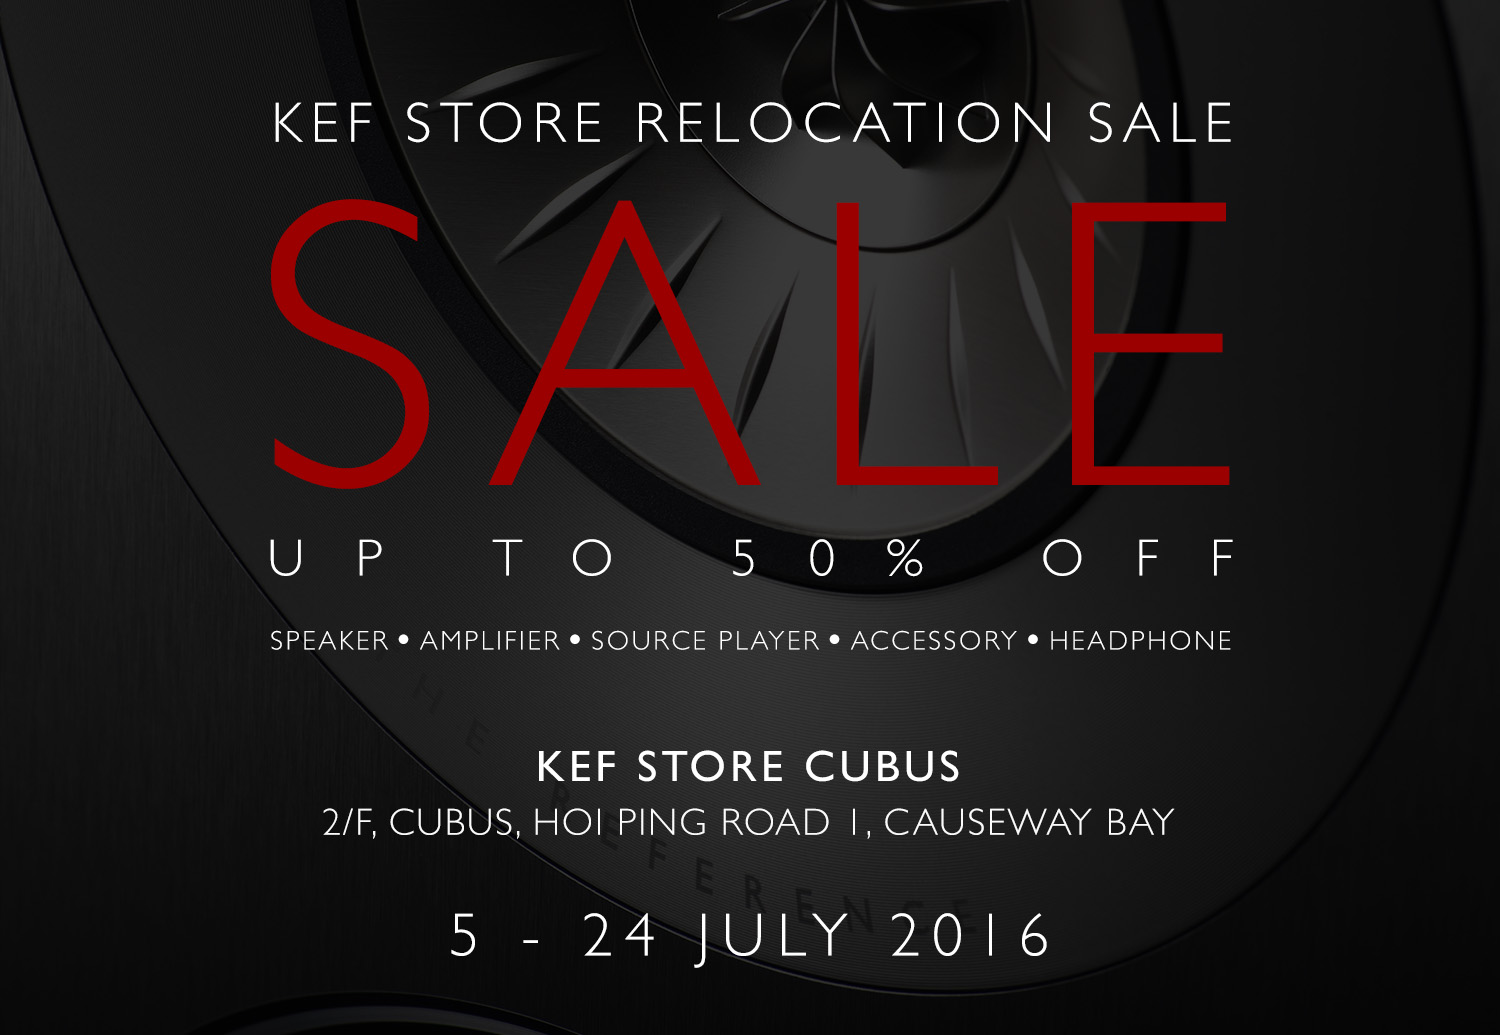 CUBUS Relocation Sale_1500_web_PR